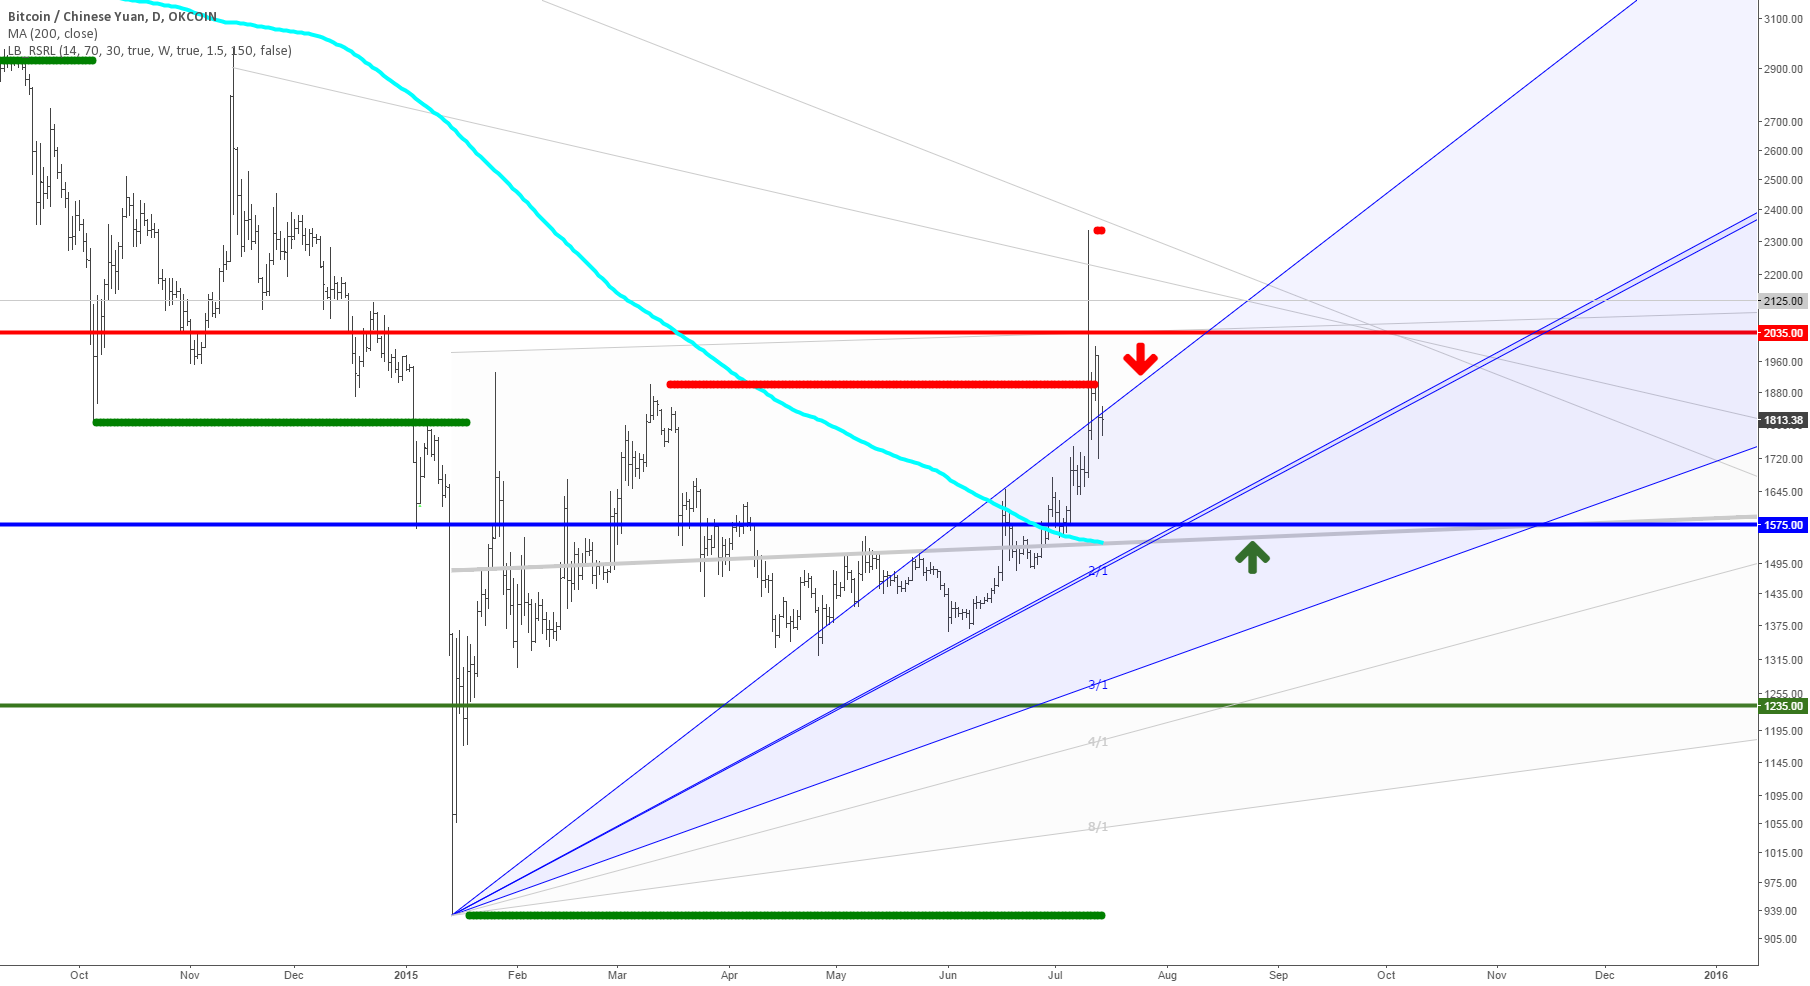 Bitcoin correction until late August, early September 2015